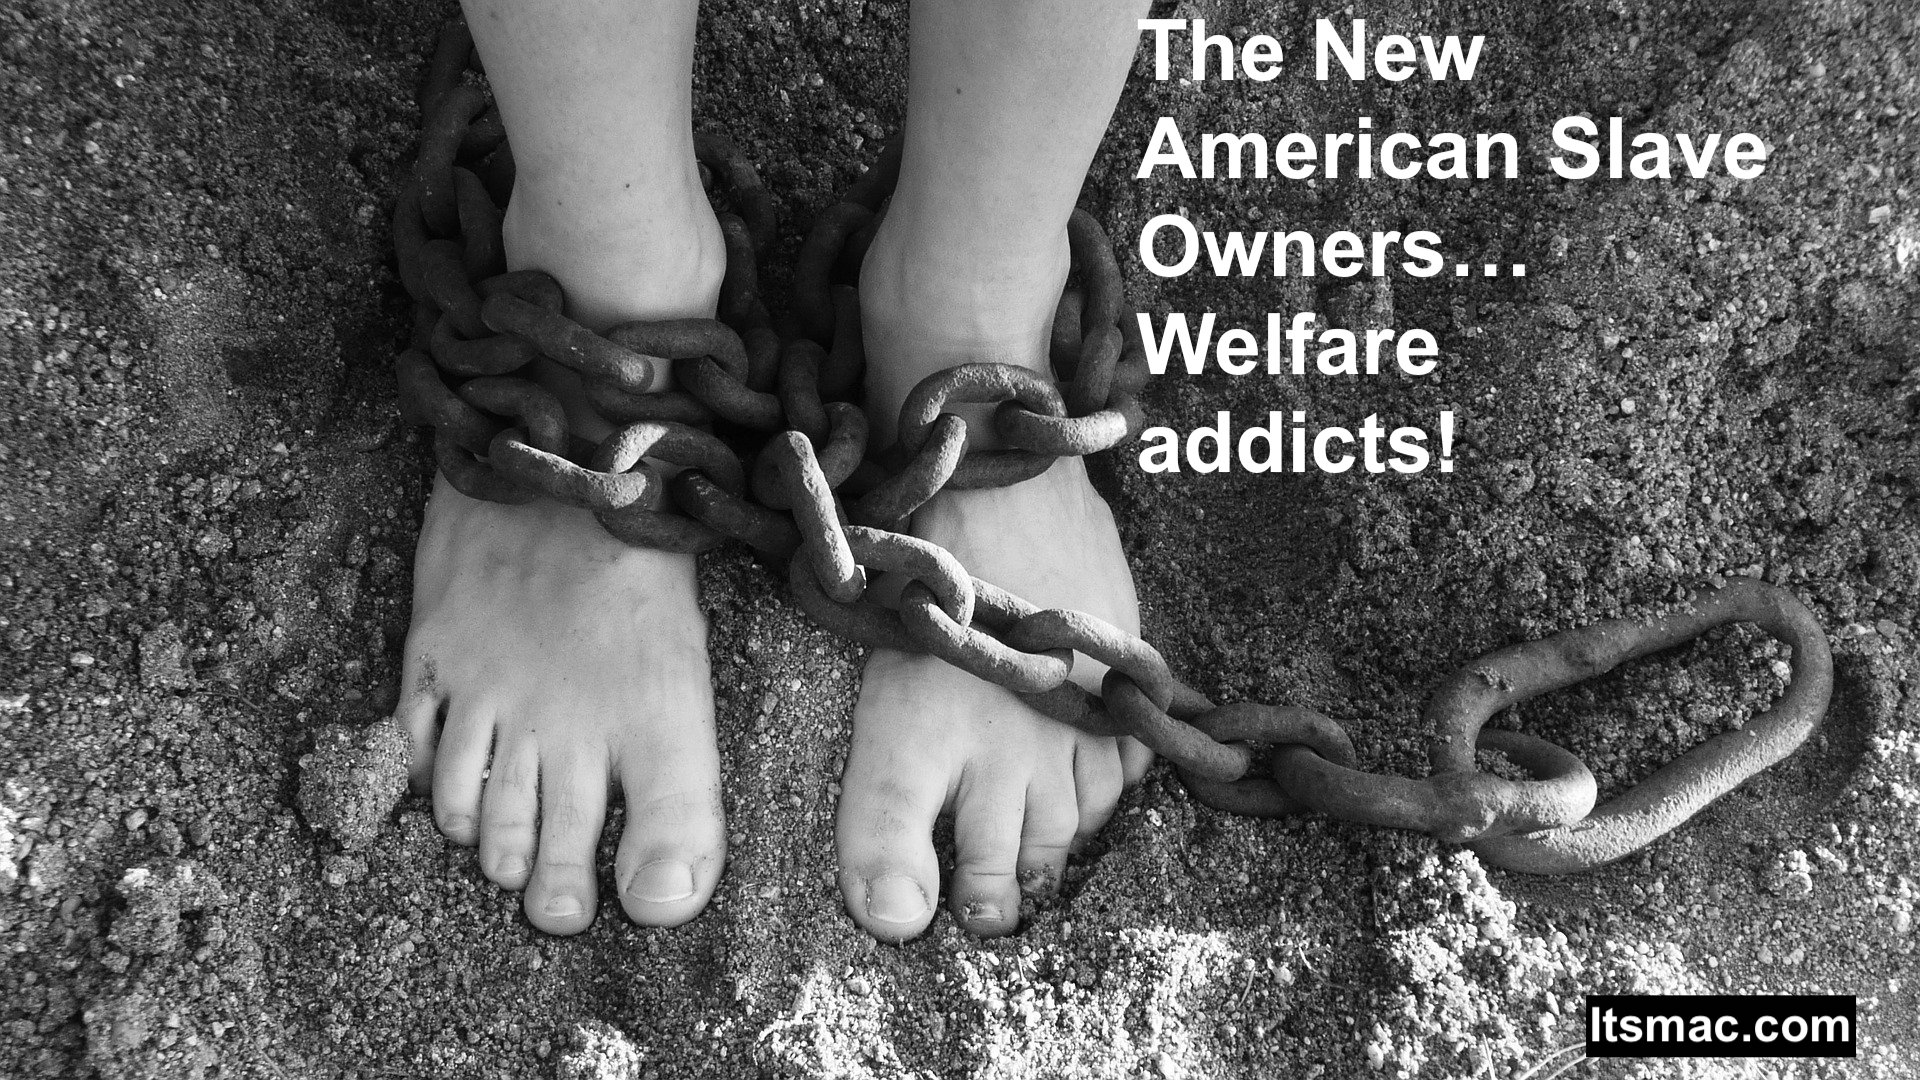 The New American Slave Owners. Welfare addicts!